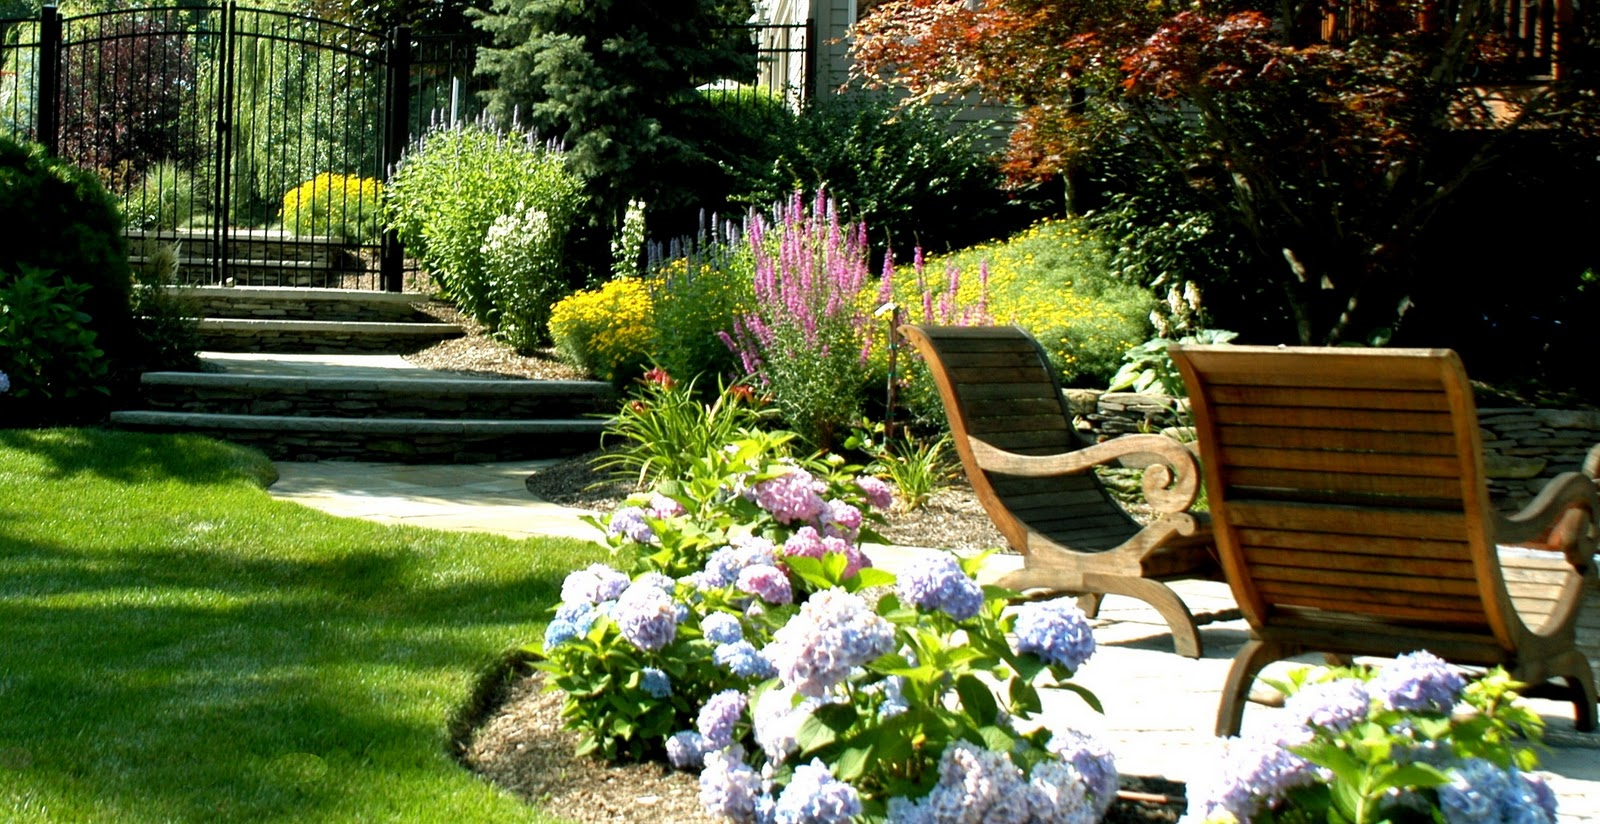 Hightechlandscapes new jersey landscape design for Garden designs images pictures